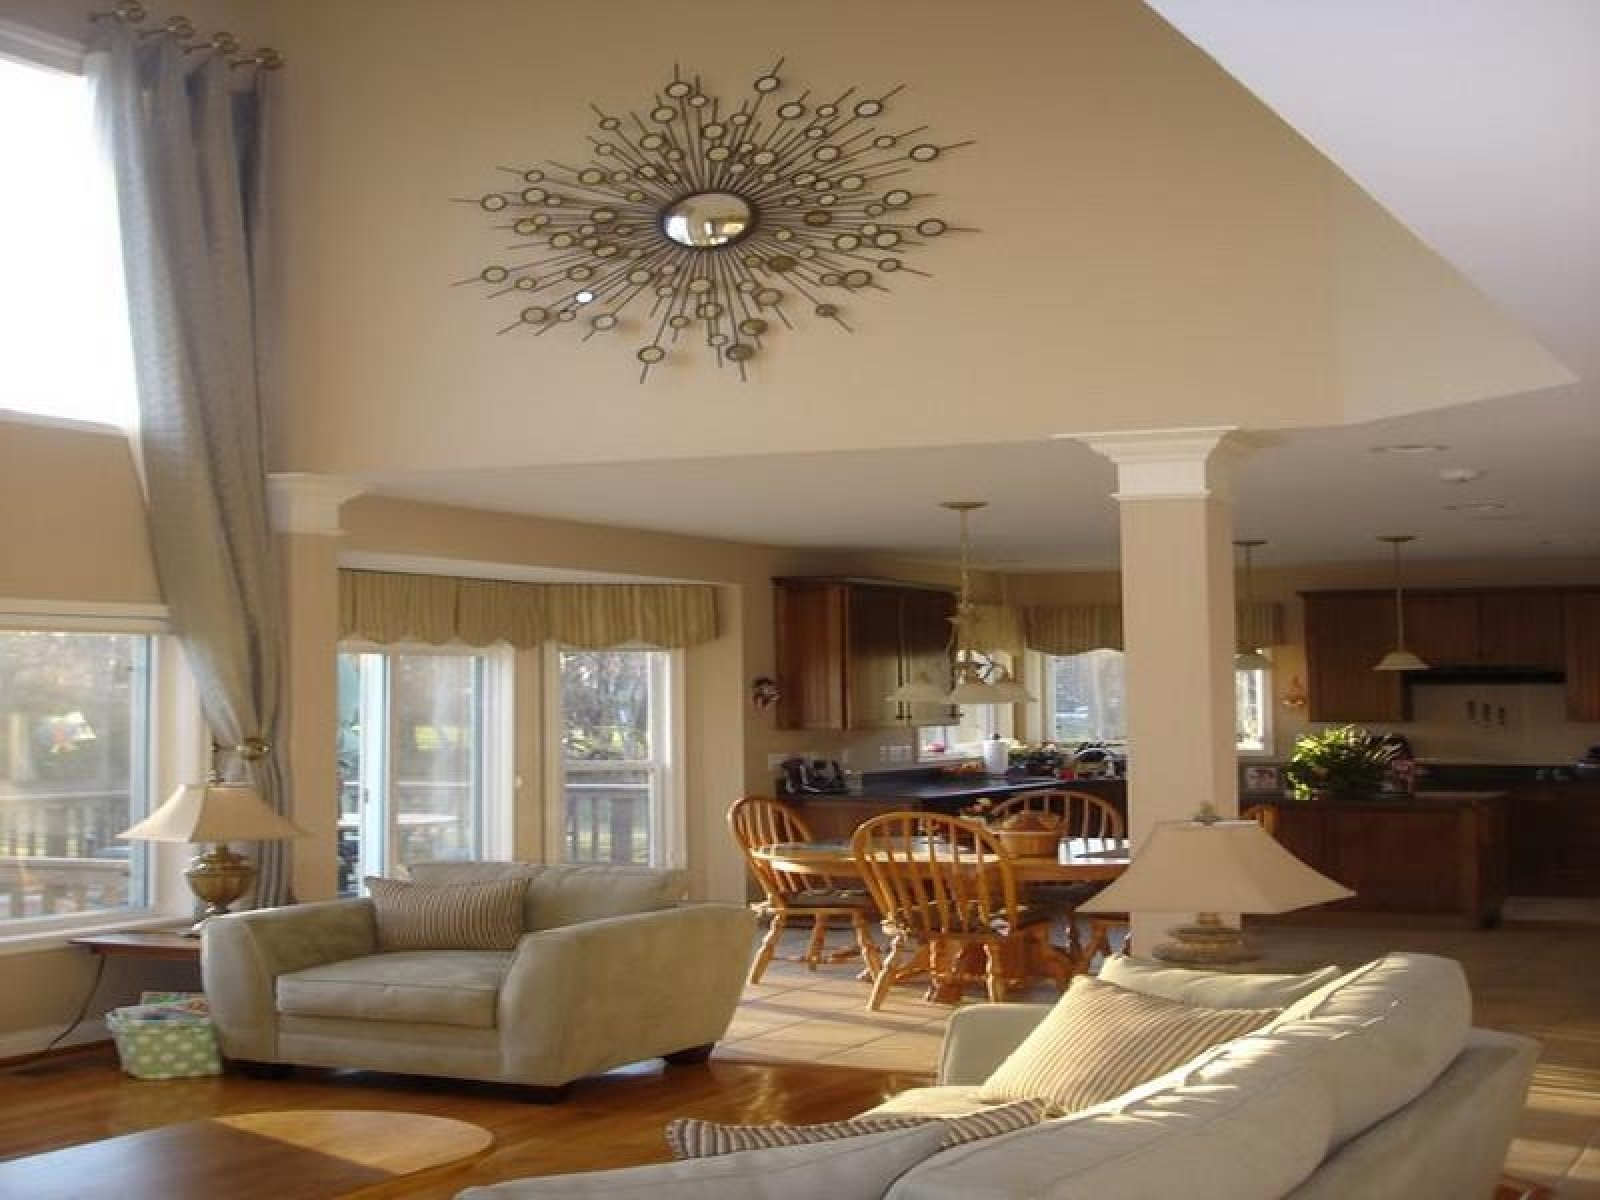 10 Lovable Decorating Ideas For Family Room large wall decorating ideas for living room pleasing decoration 2021